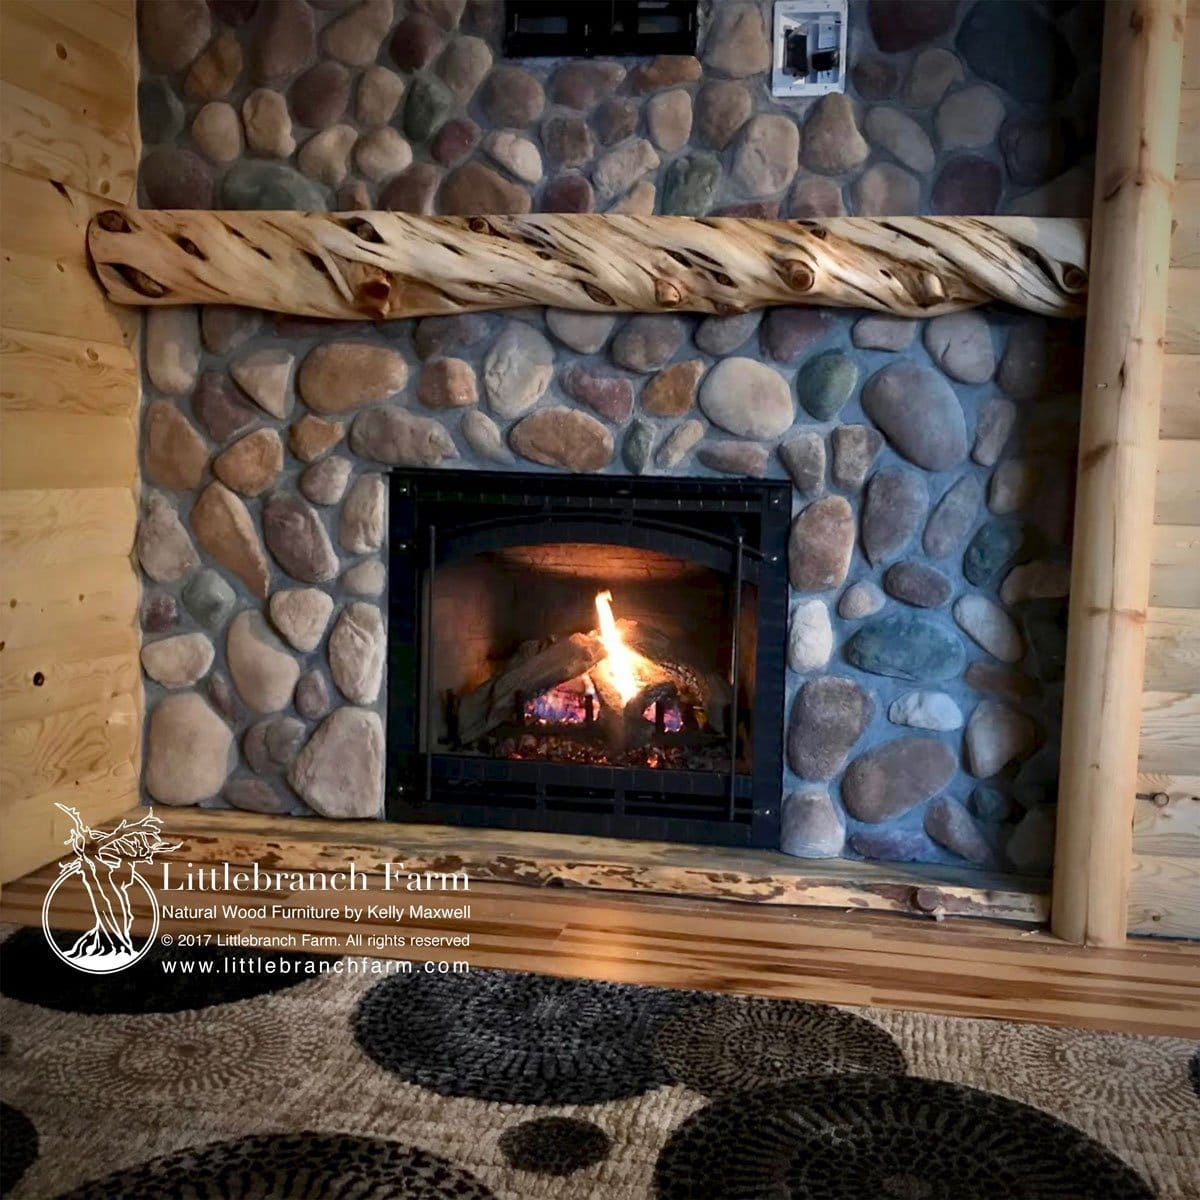 Live Edge Fireplace Mantel - live edge wood | Littlebranch ...